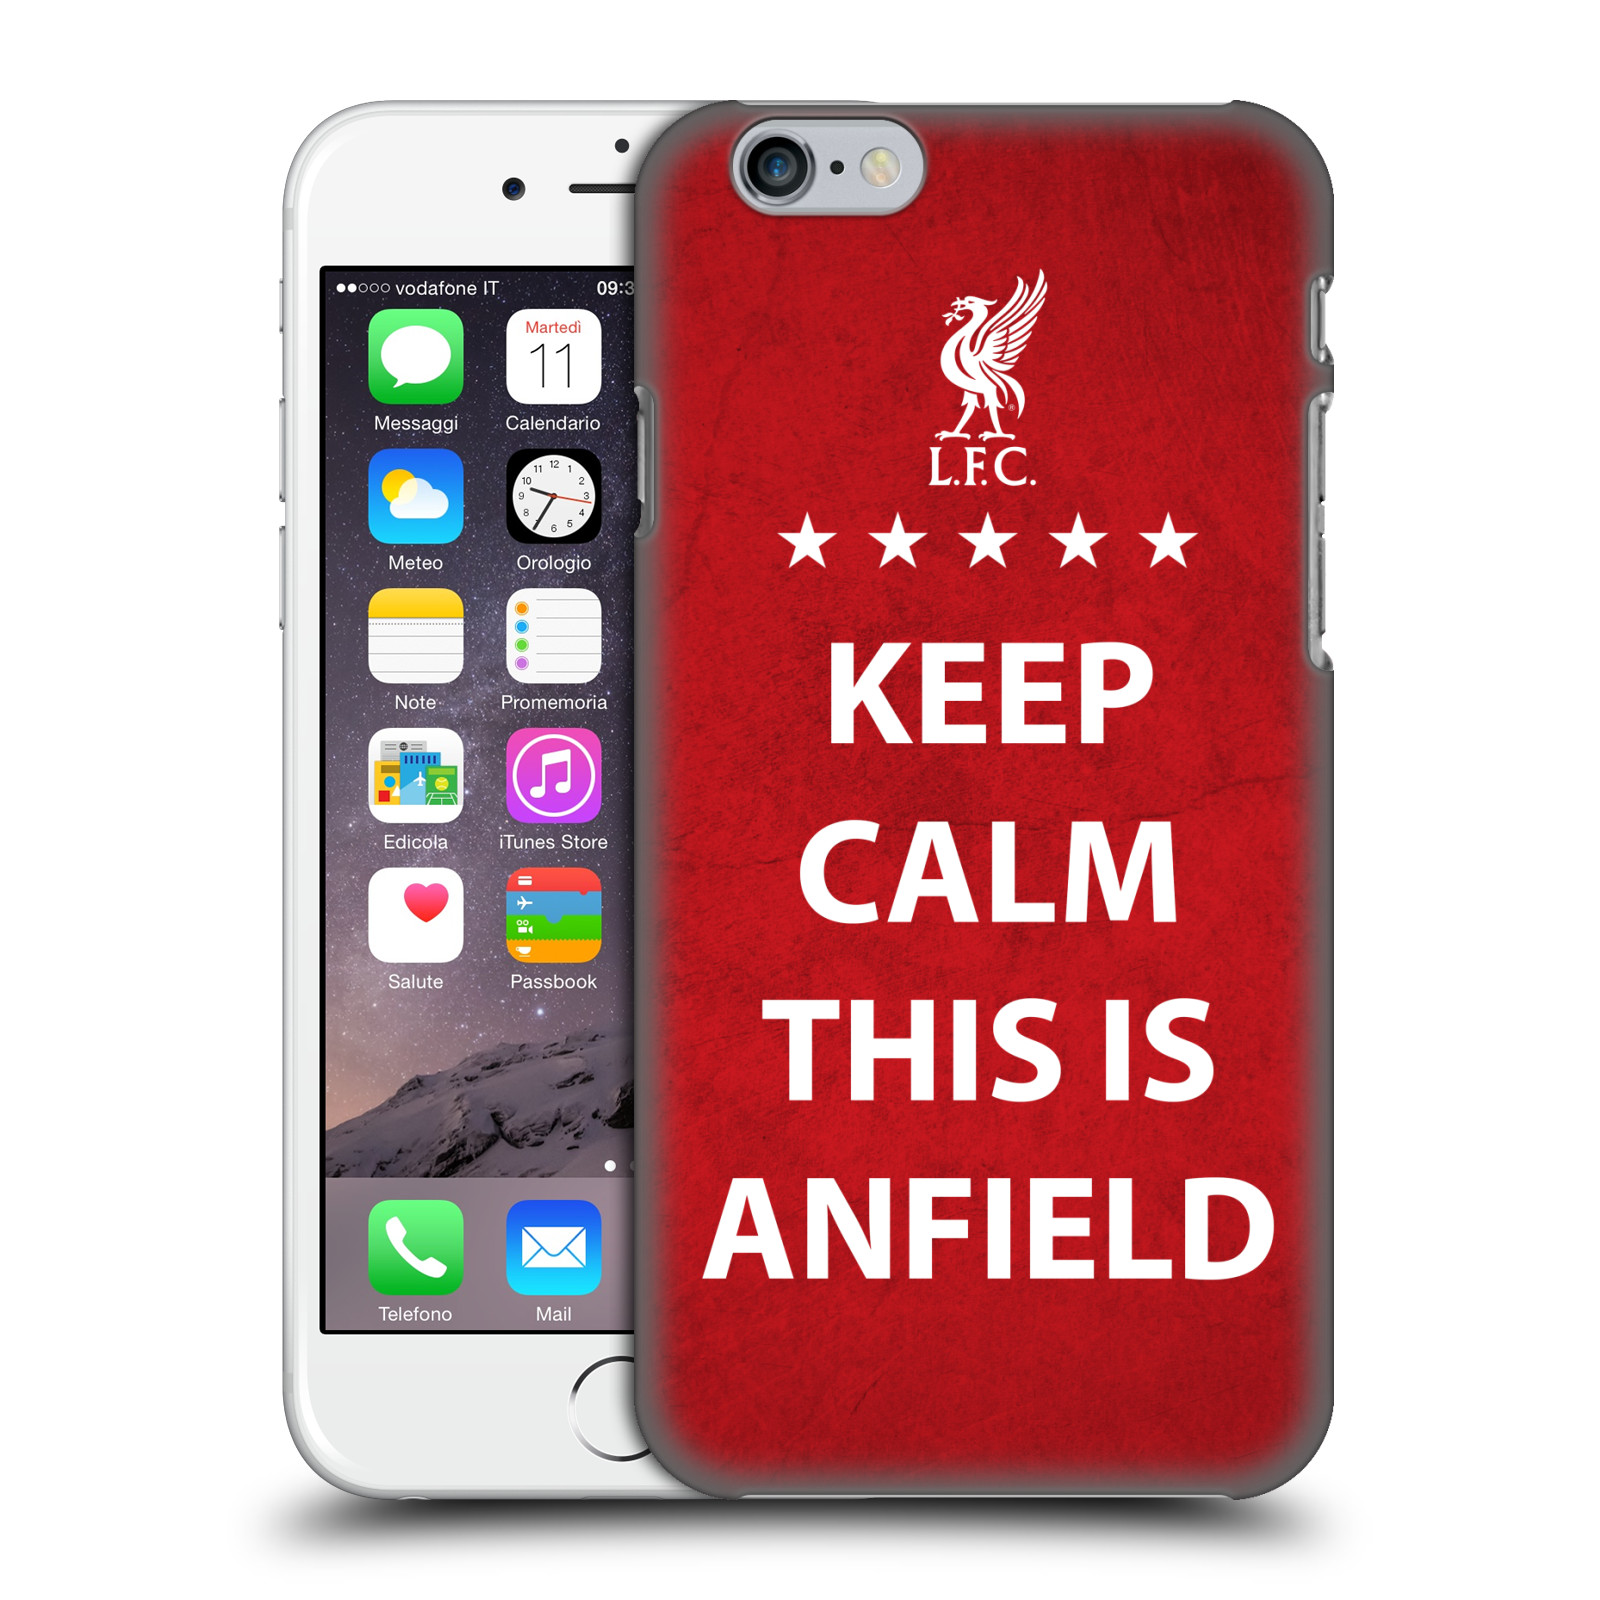 Liverpool FC LFC This Is Anfield-Keep Calm Red